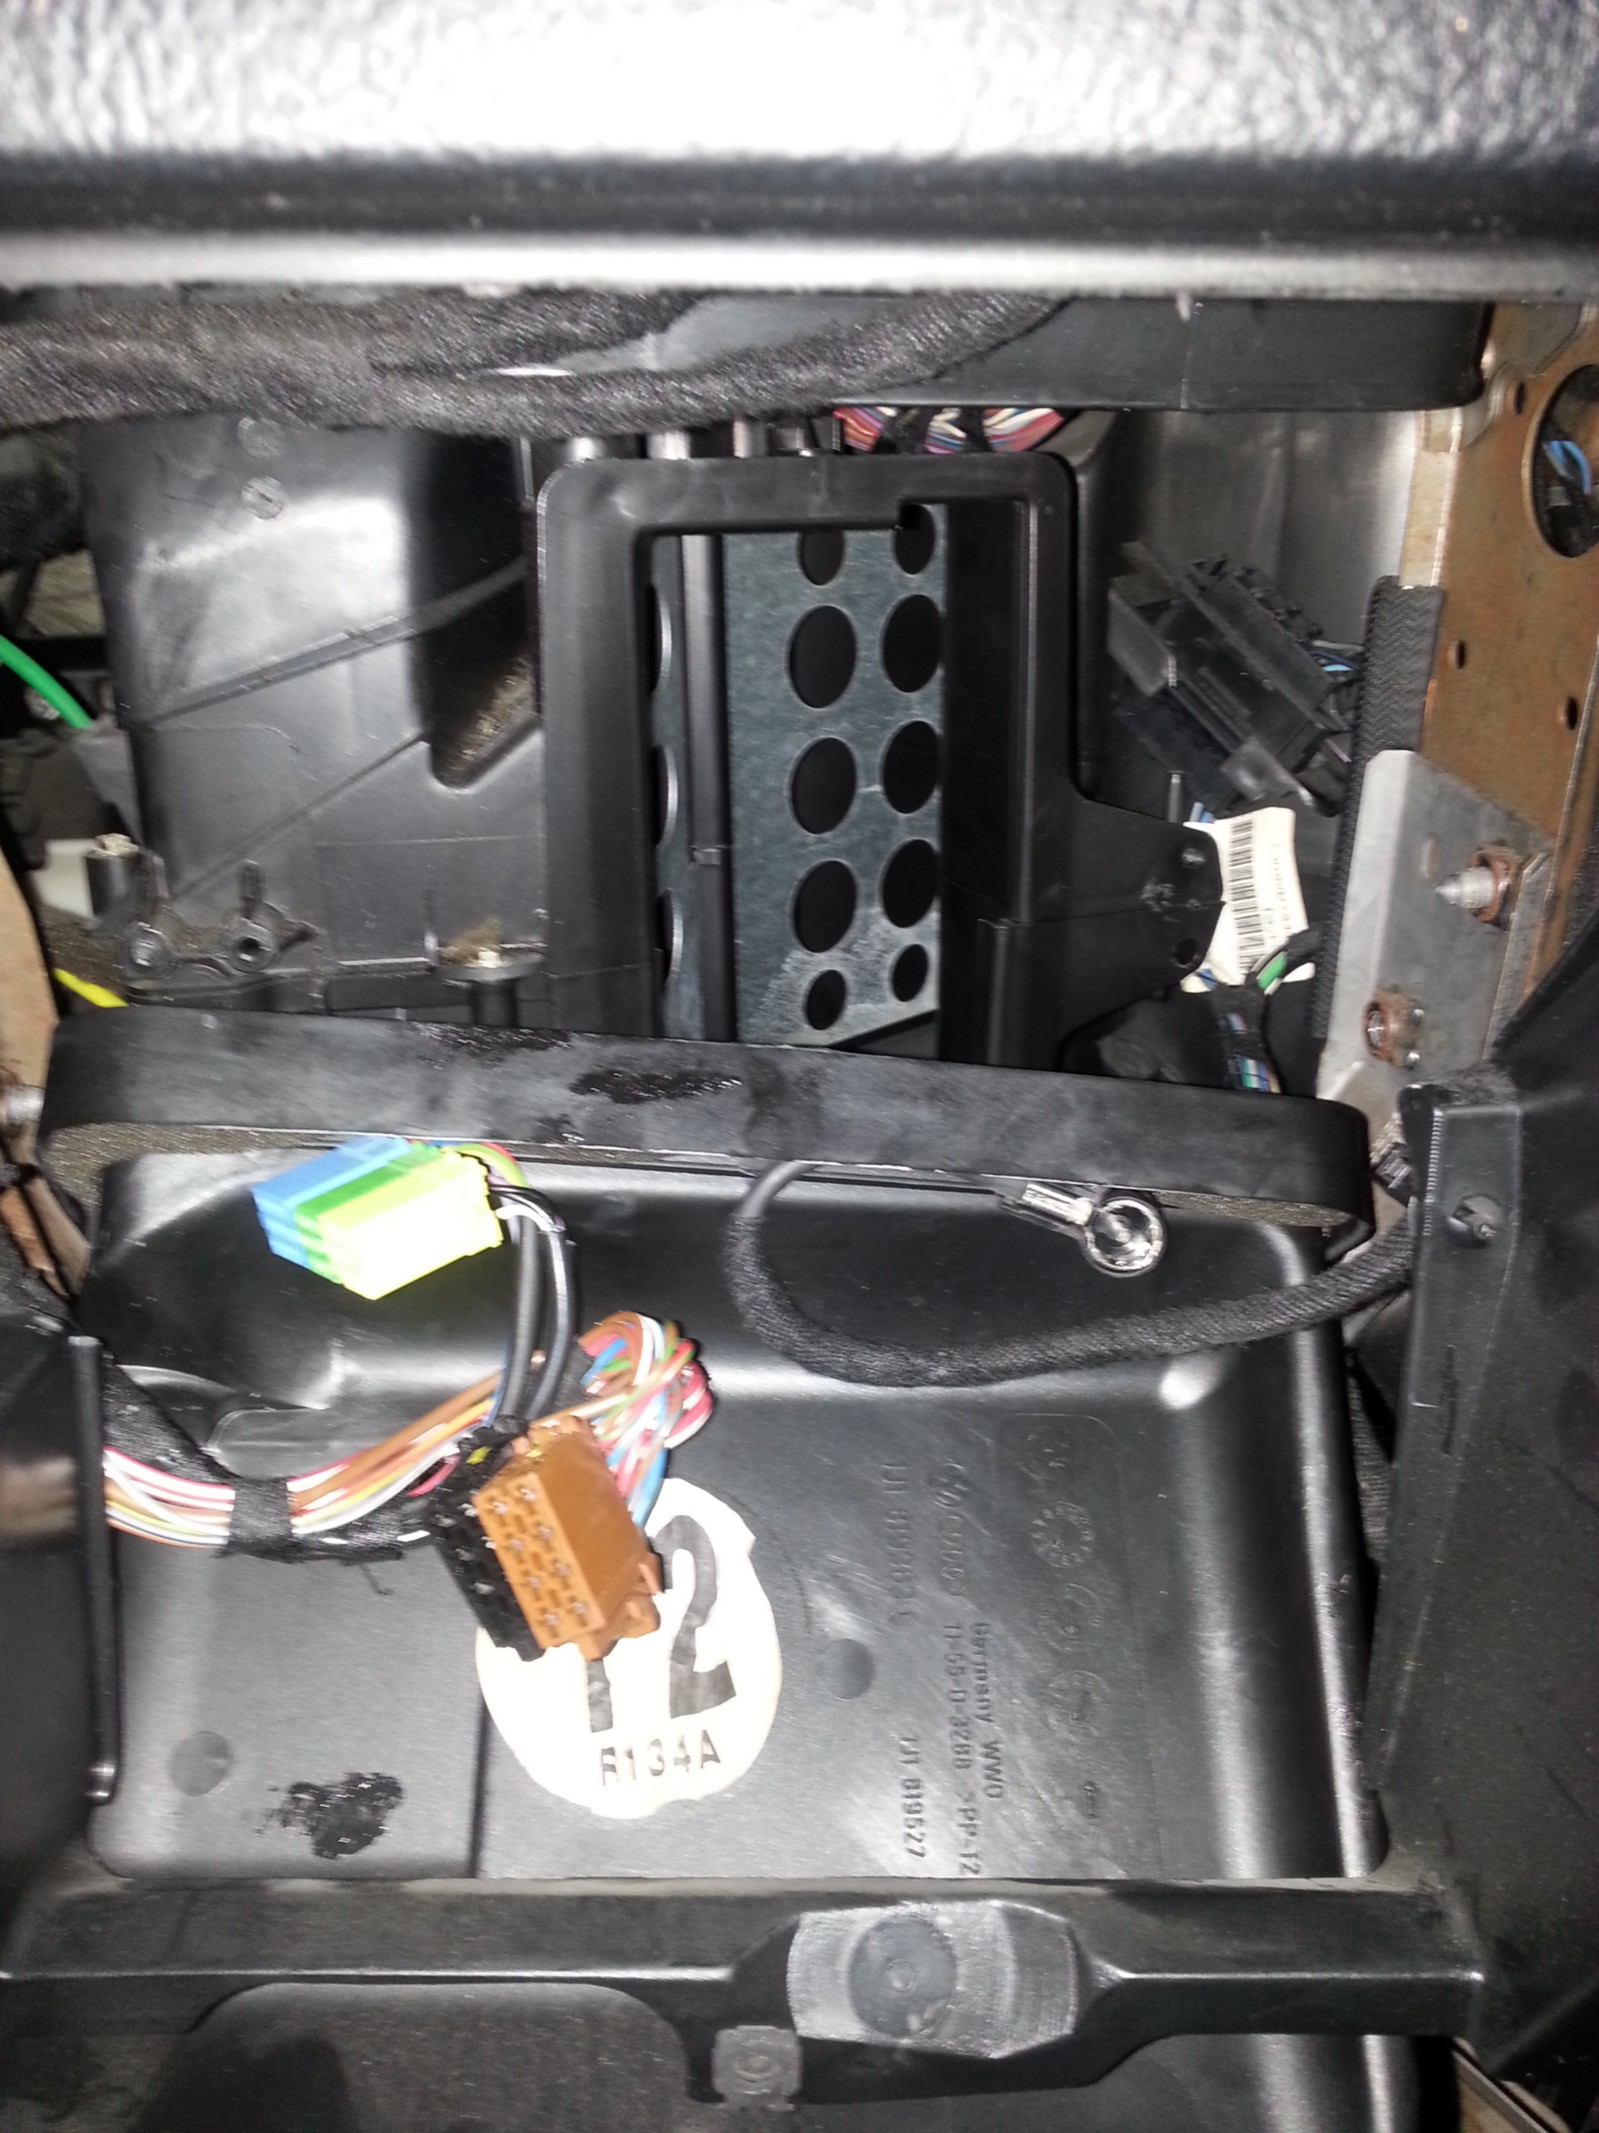 Maxresdefault as well Gm Blend Door Actuator Yukon Tahoe Serra further Remove Blend Door Actuator Wiring Conenctor additionally Maxresdefault likewise Hjvbwnsp Gt Mfzm P B Q. on 2003 chevy silverado blend door actuator location